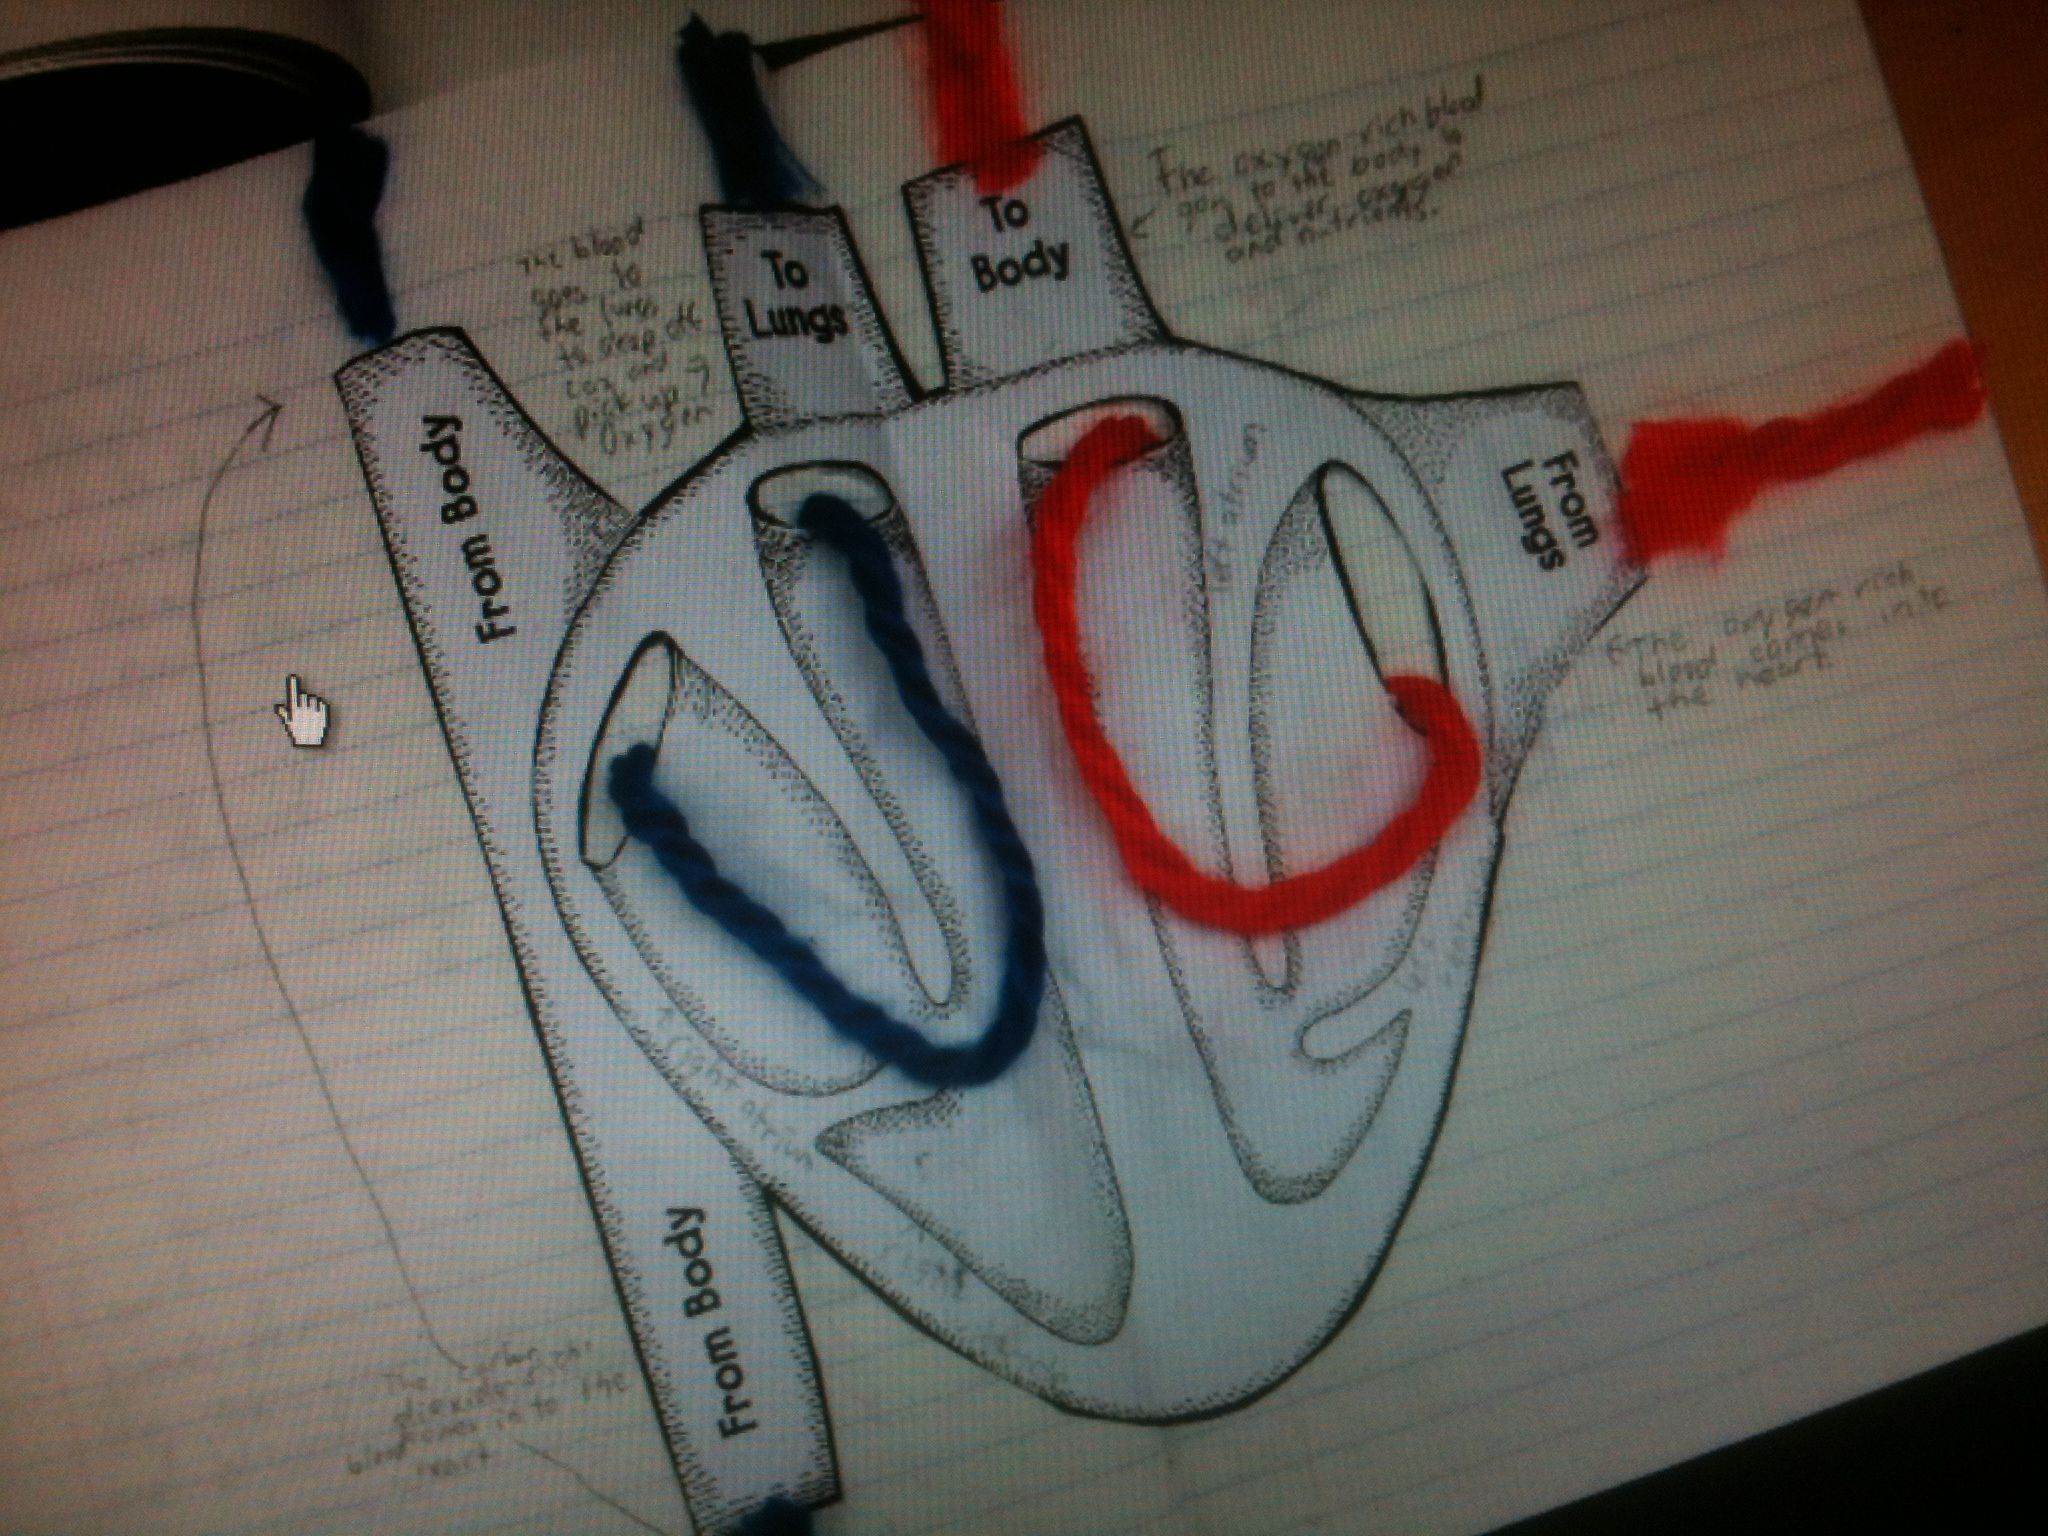 circulatory system project Heart and circulatory system anatomy and physiology - science fair projects and experiments: topics, ideas, resources, and sample projects.